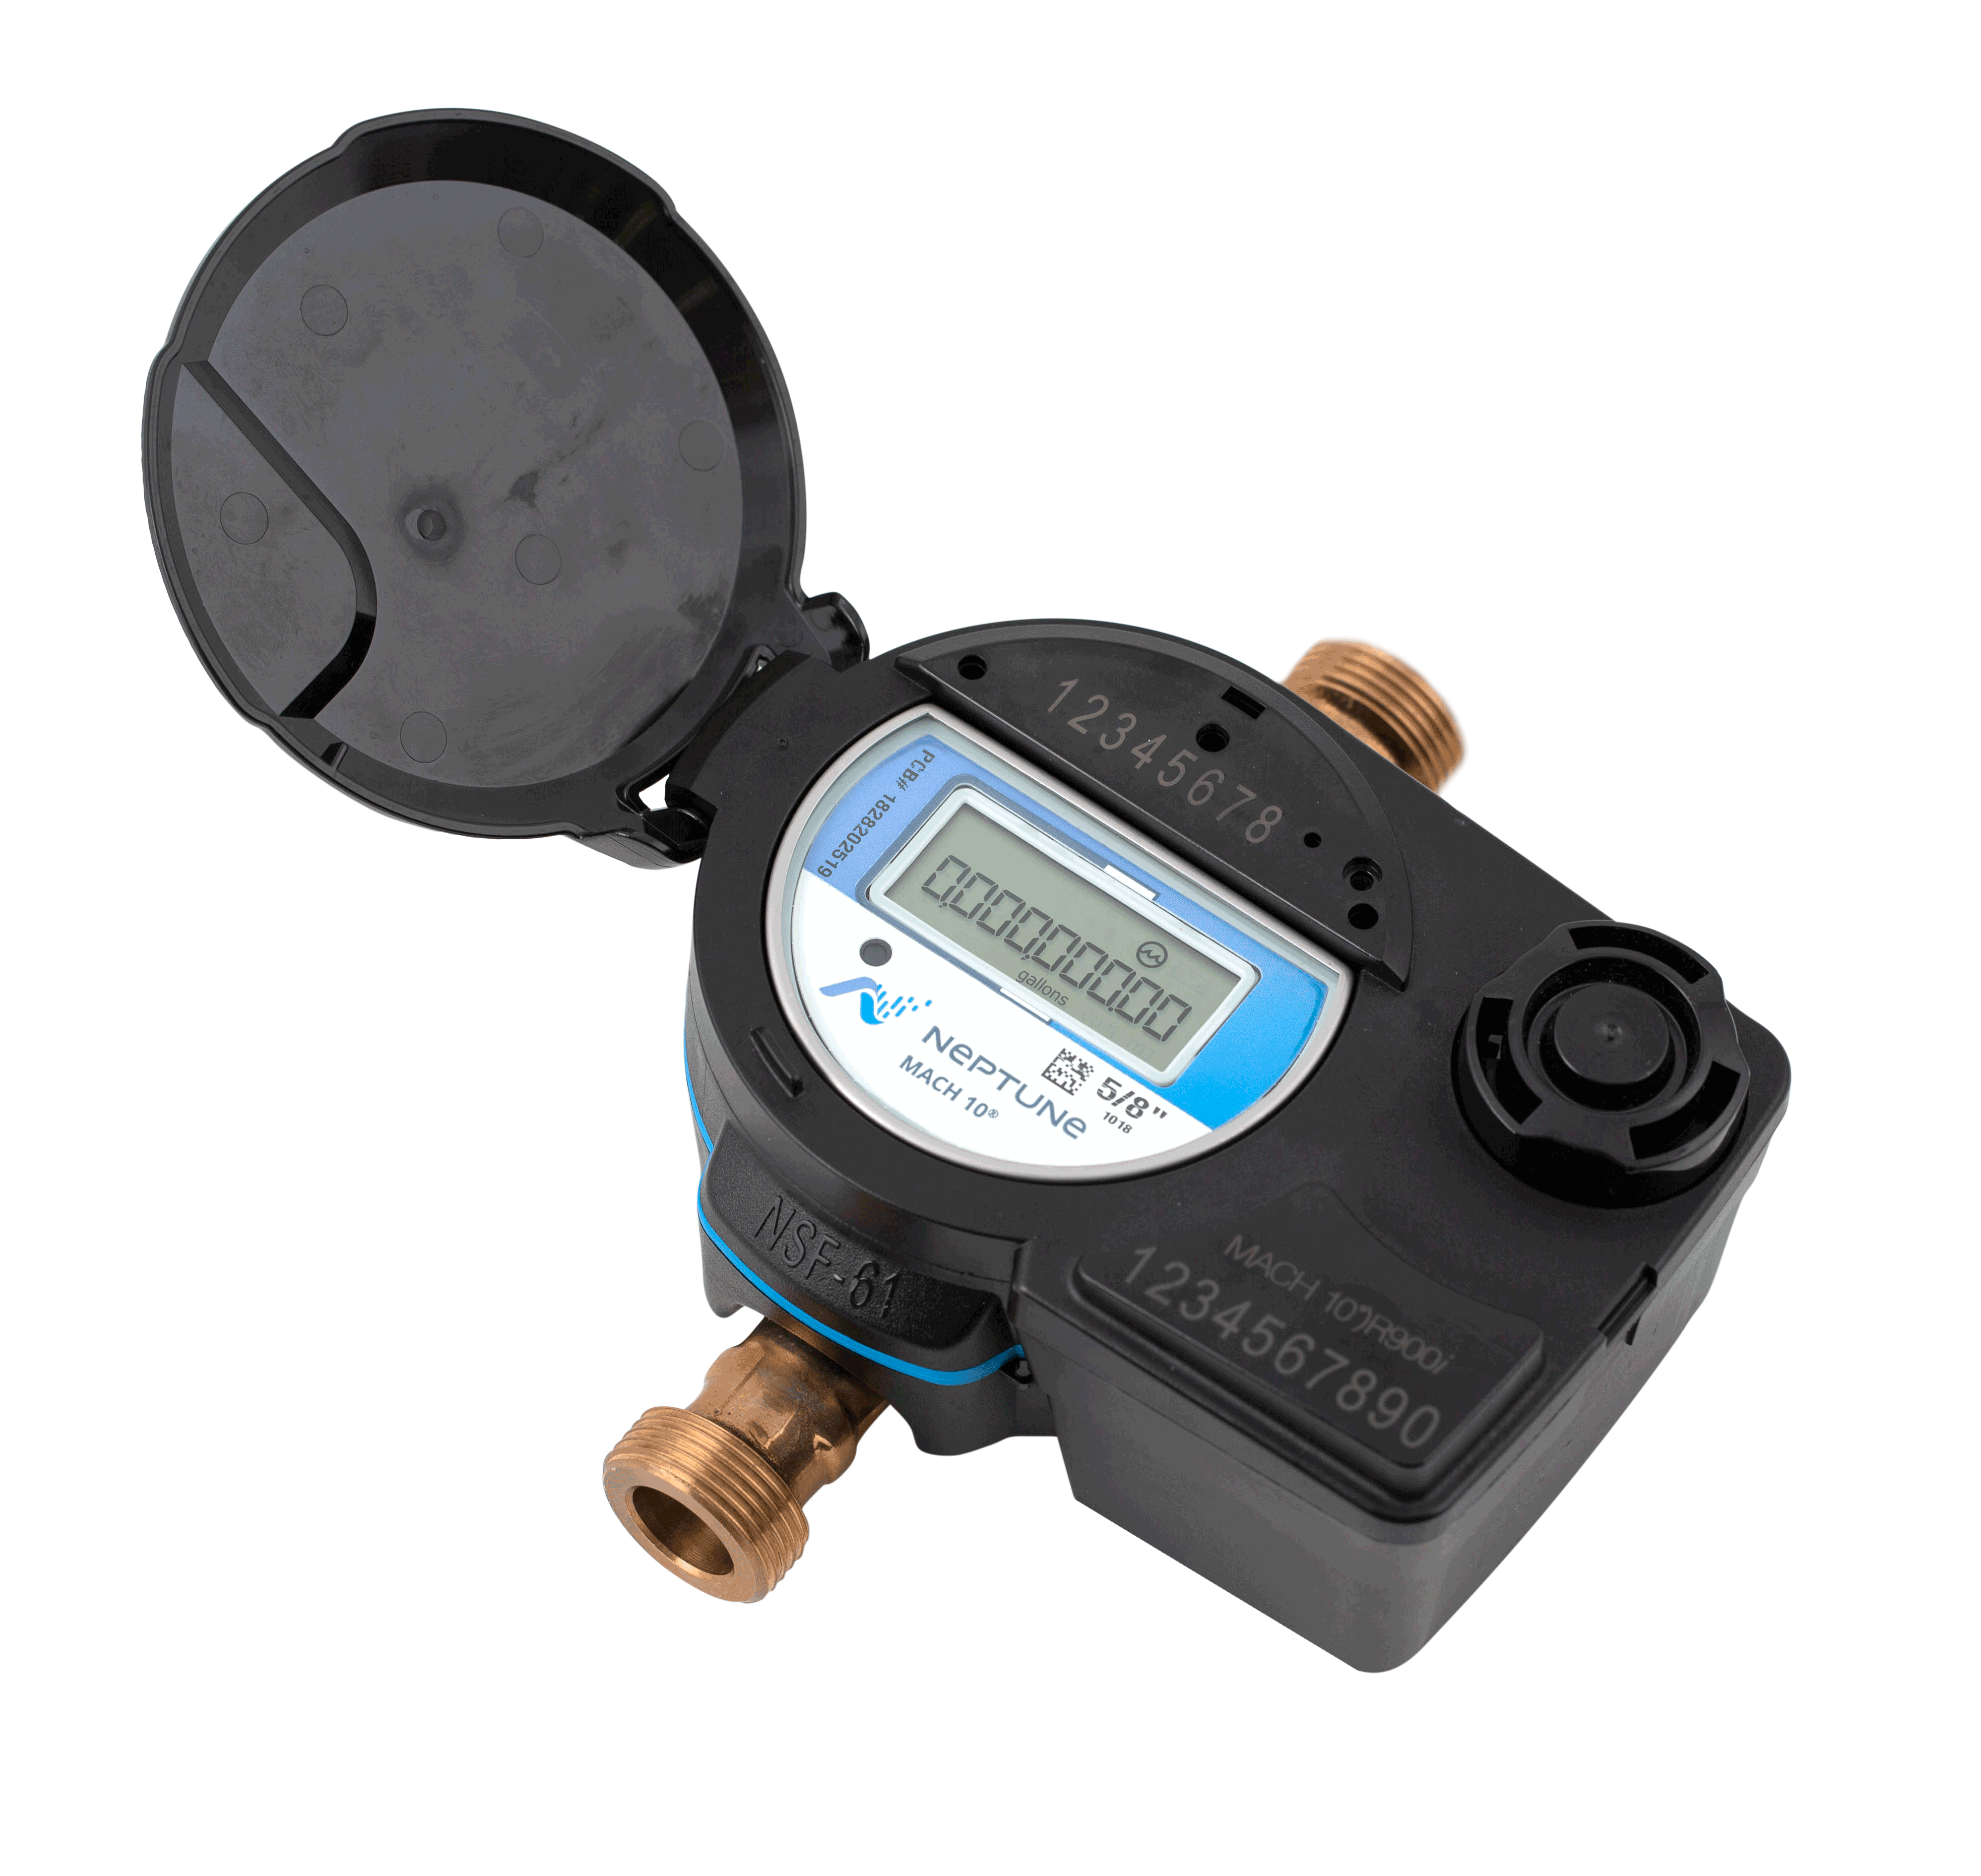 Mach-10 Ultrasonic Meter